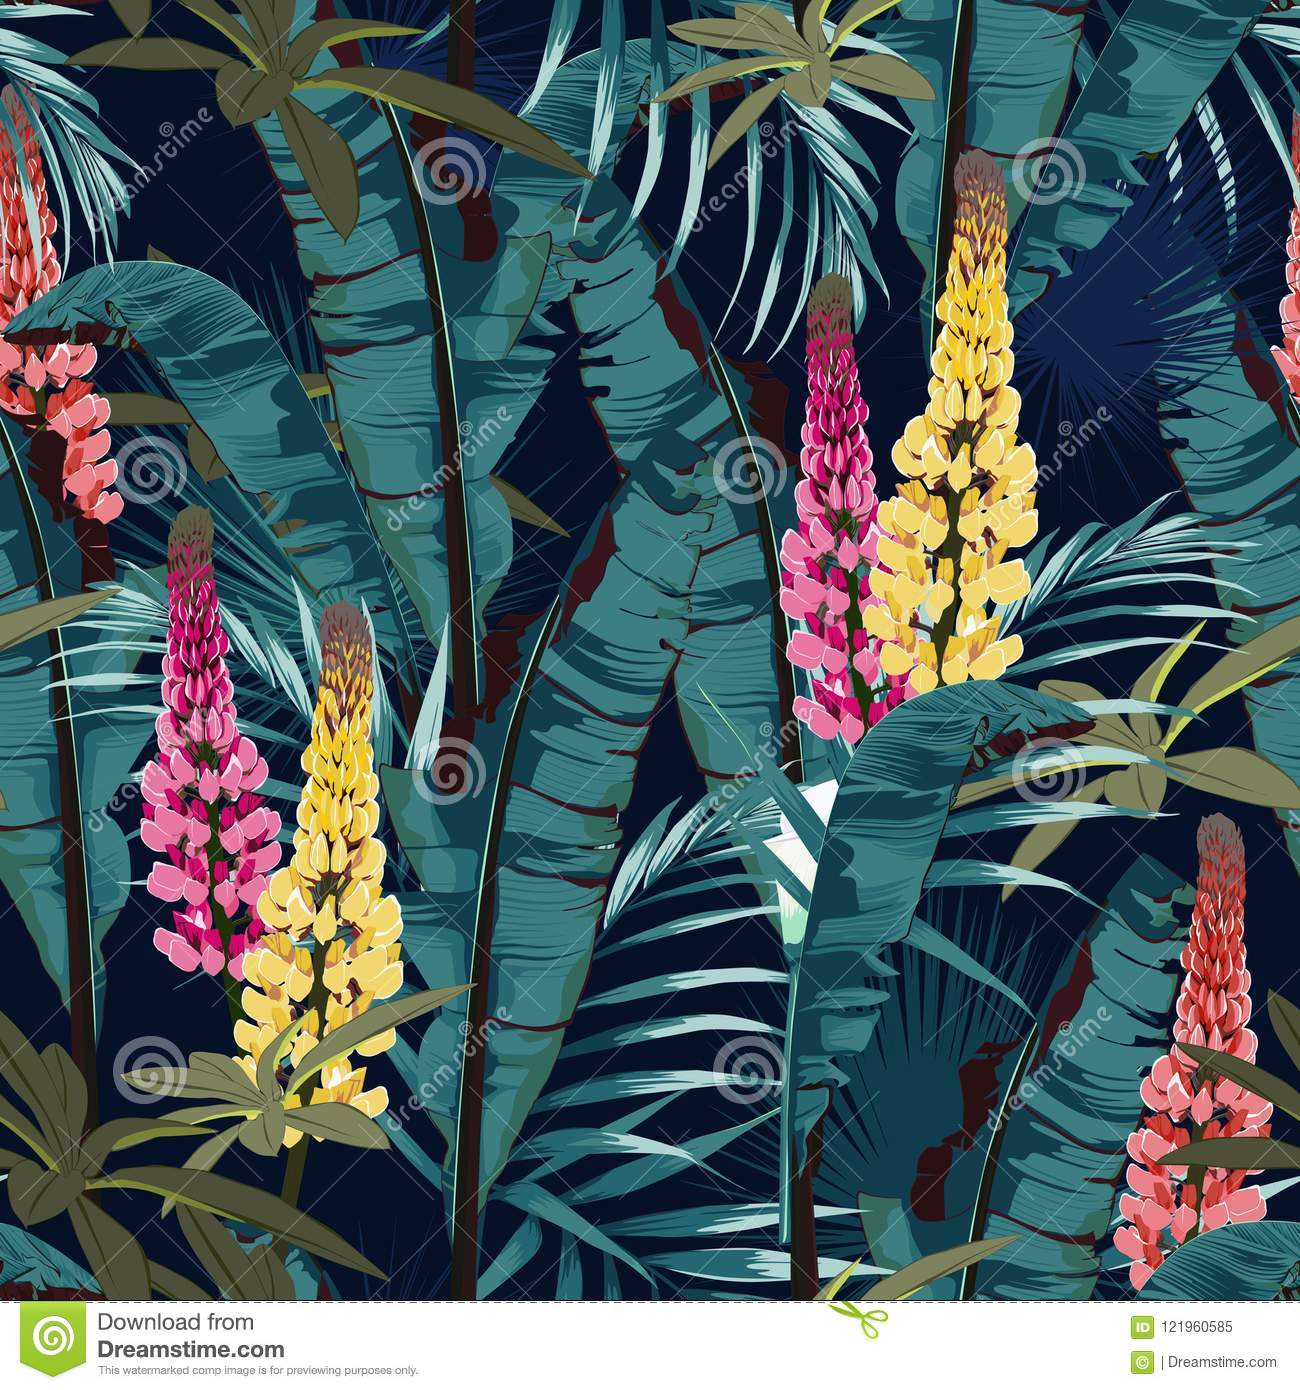 Tropic summer painting seamless vector pattern with palm banana leaf and plants. Floral jungle lupines paradise flowers.